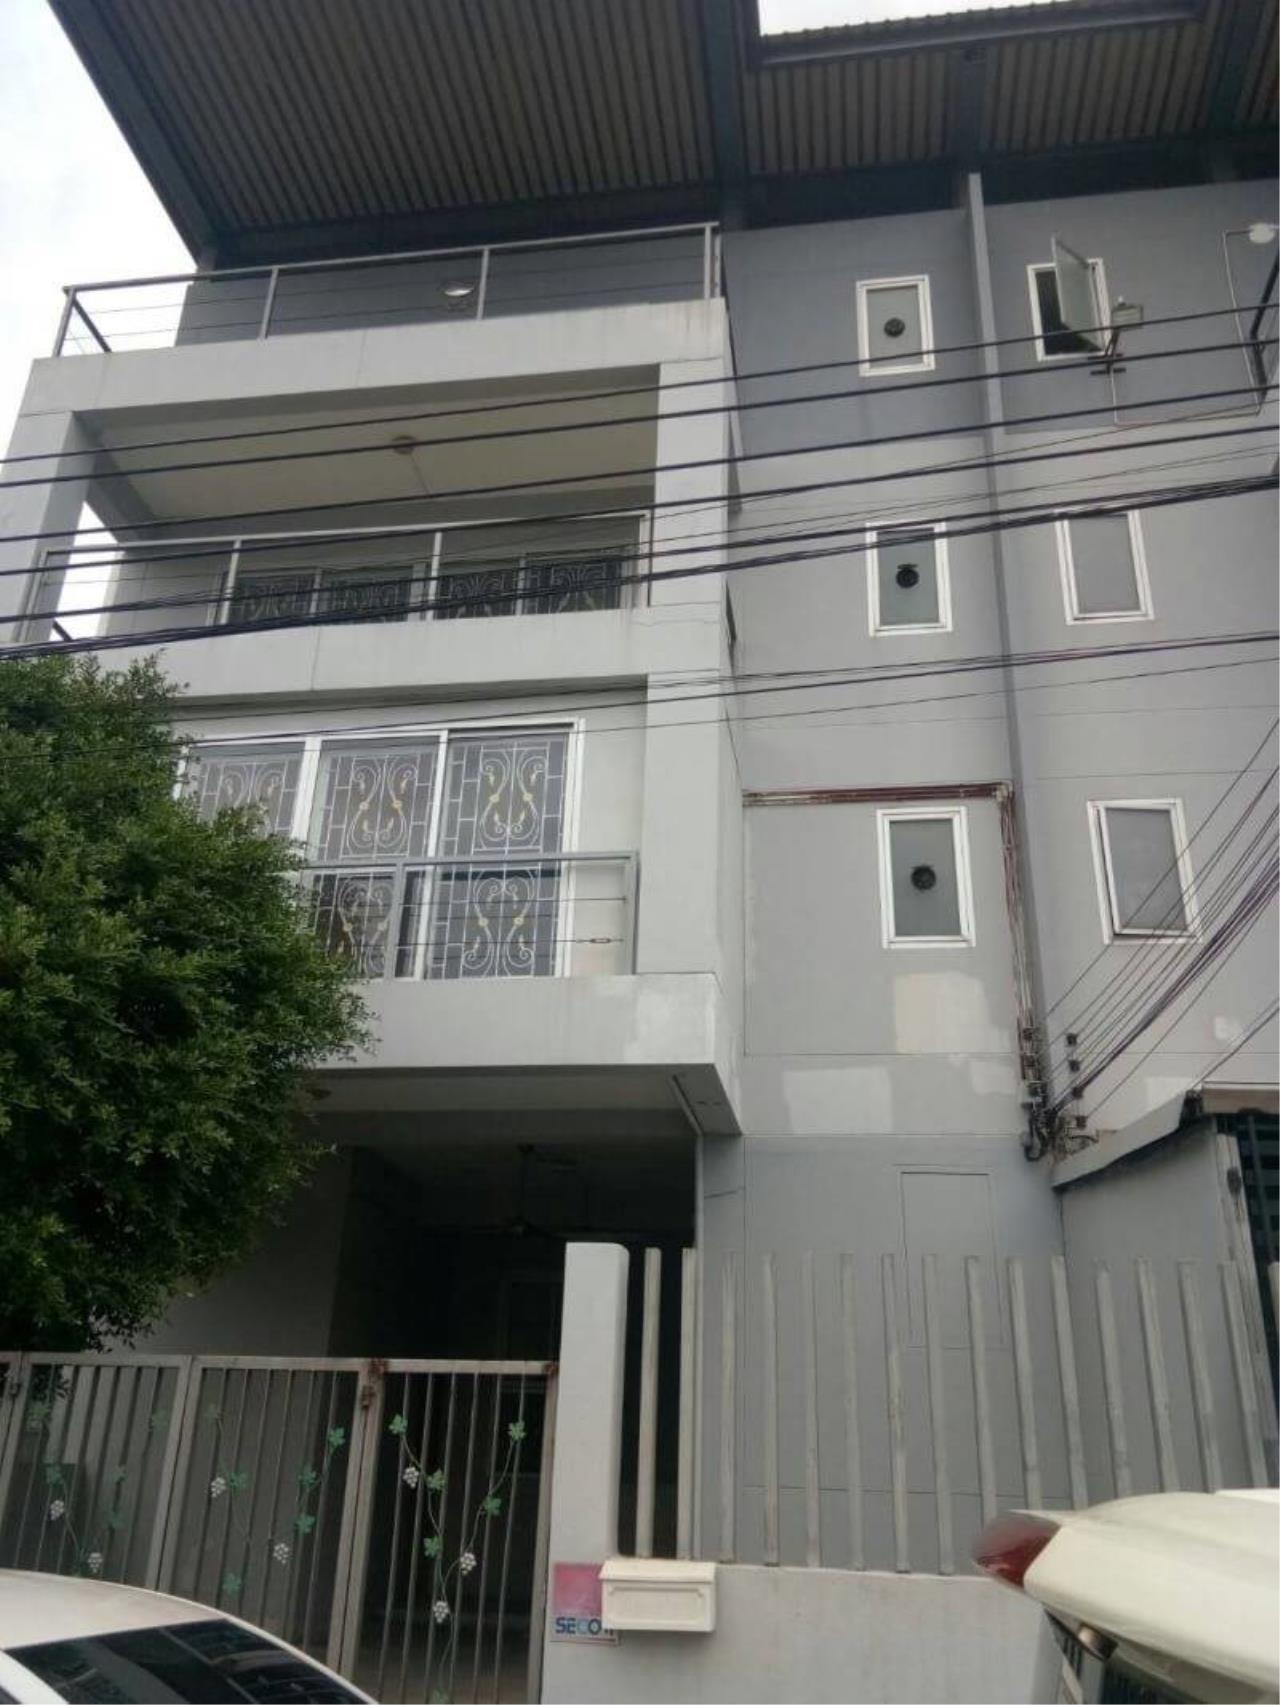 Agent - Phapayawarin Agency's Townhome 4 storeys 1